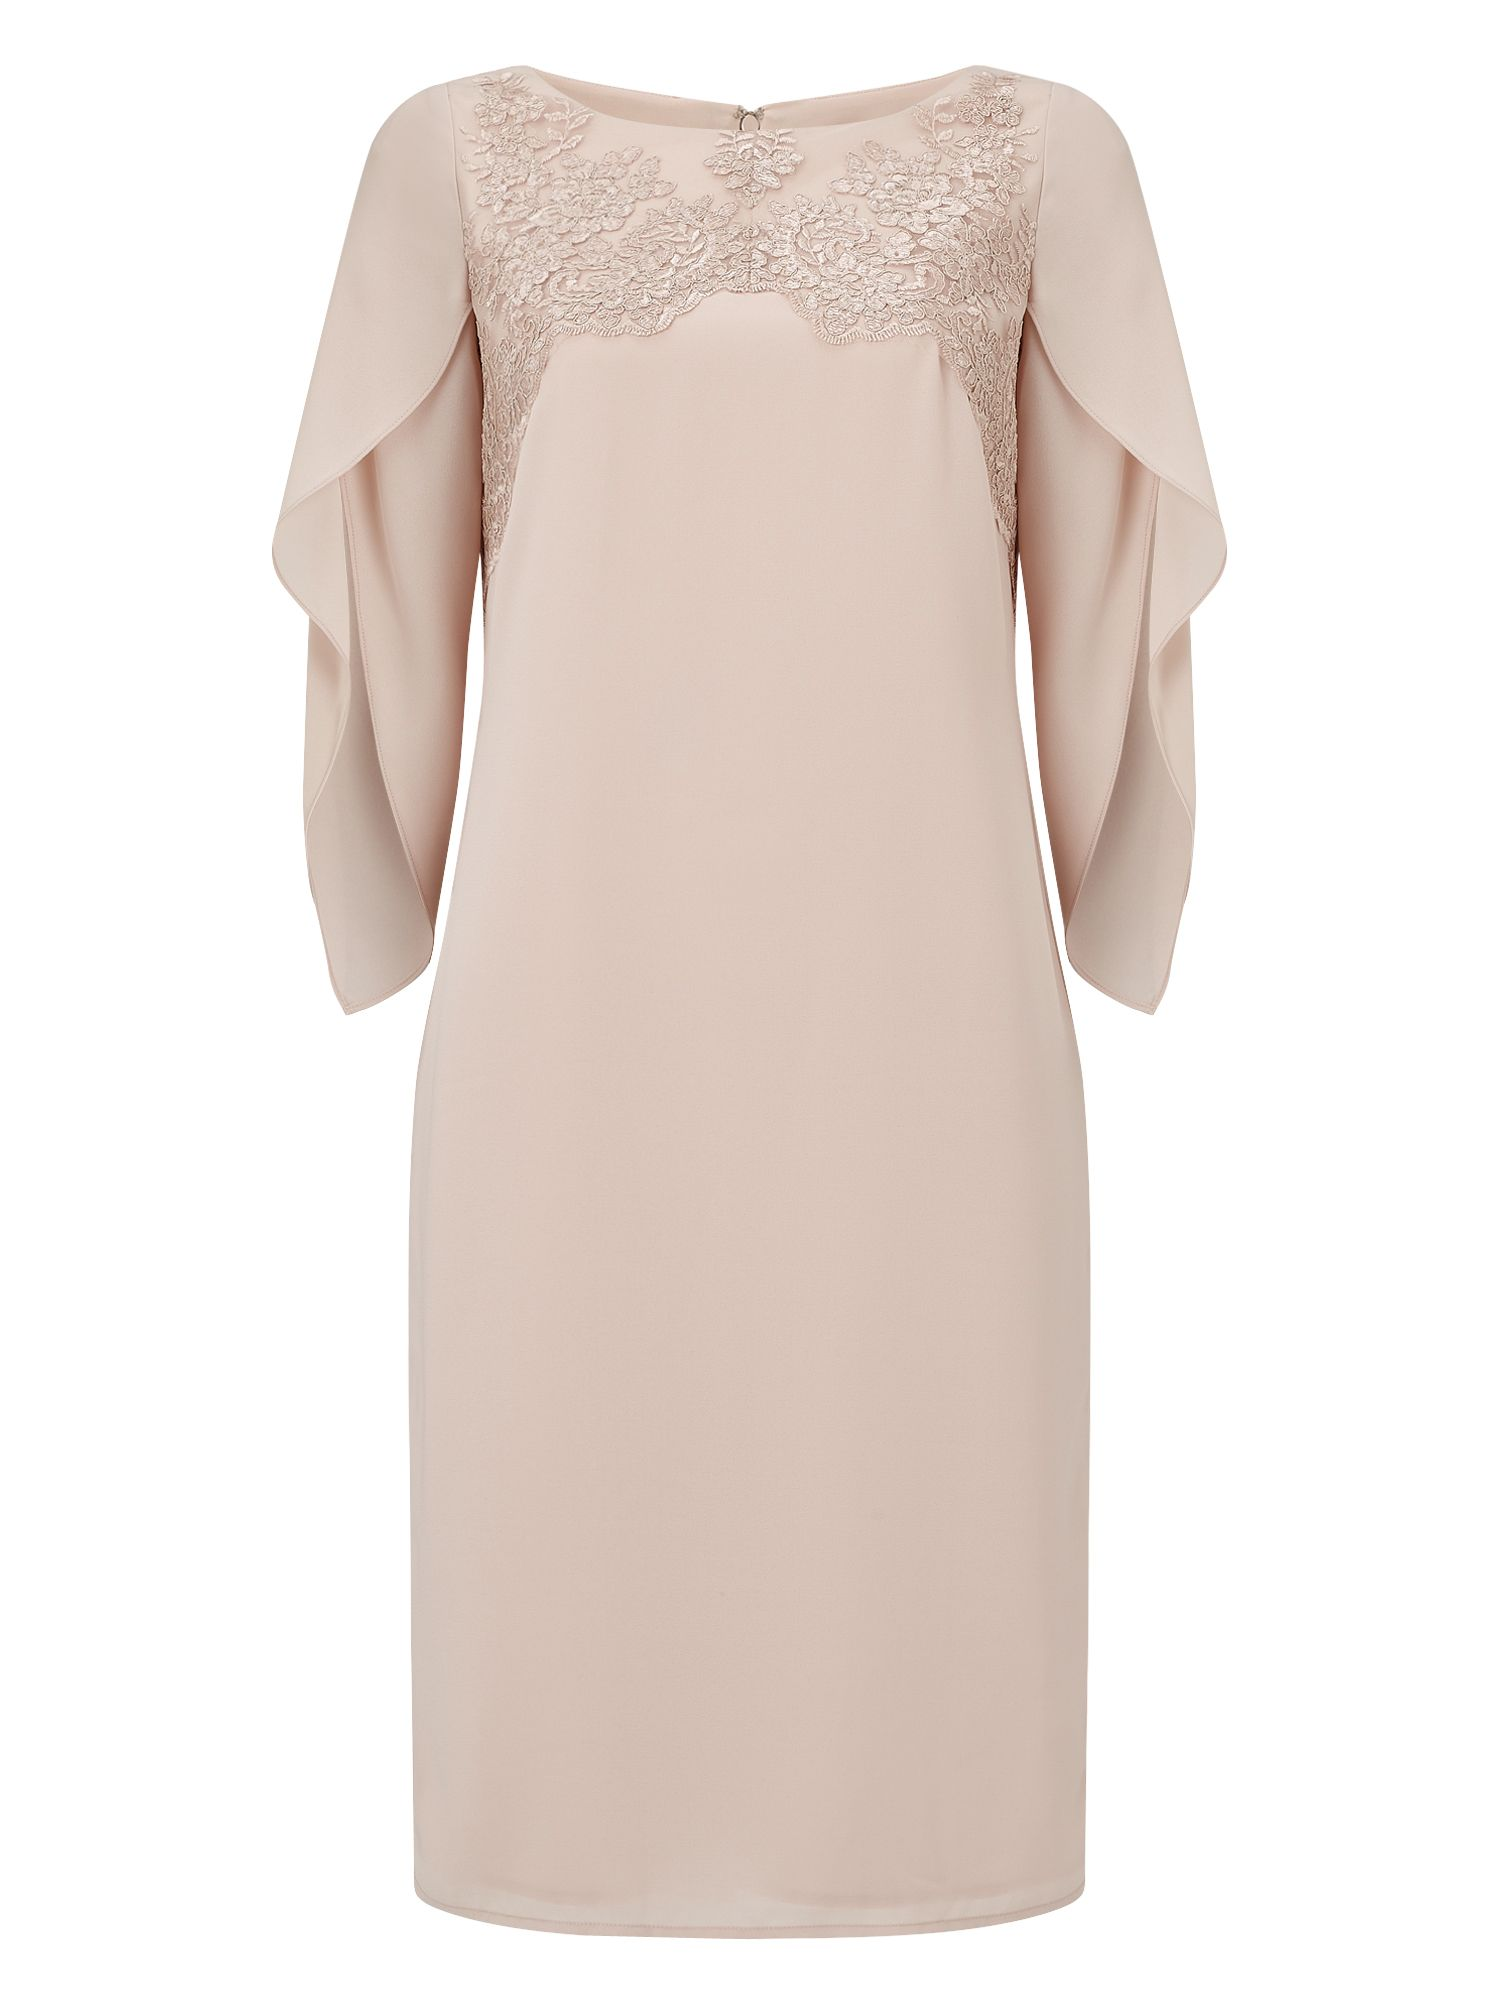 Jacques Vert Milly Lace Sheath Dress, Neutral